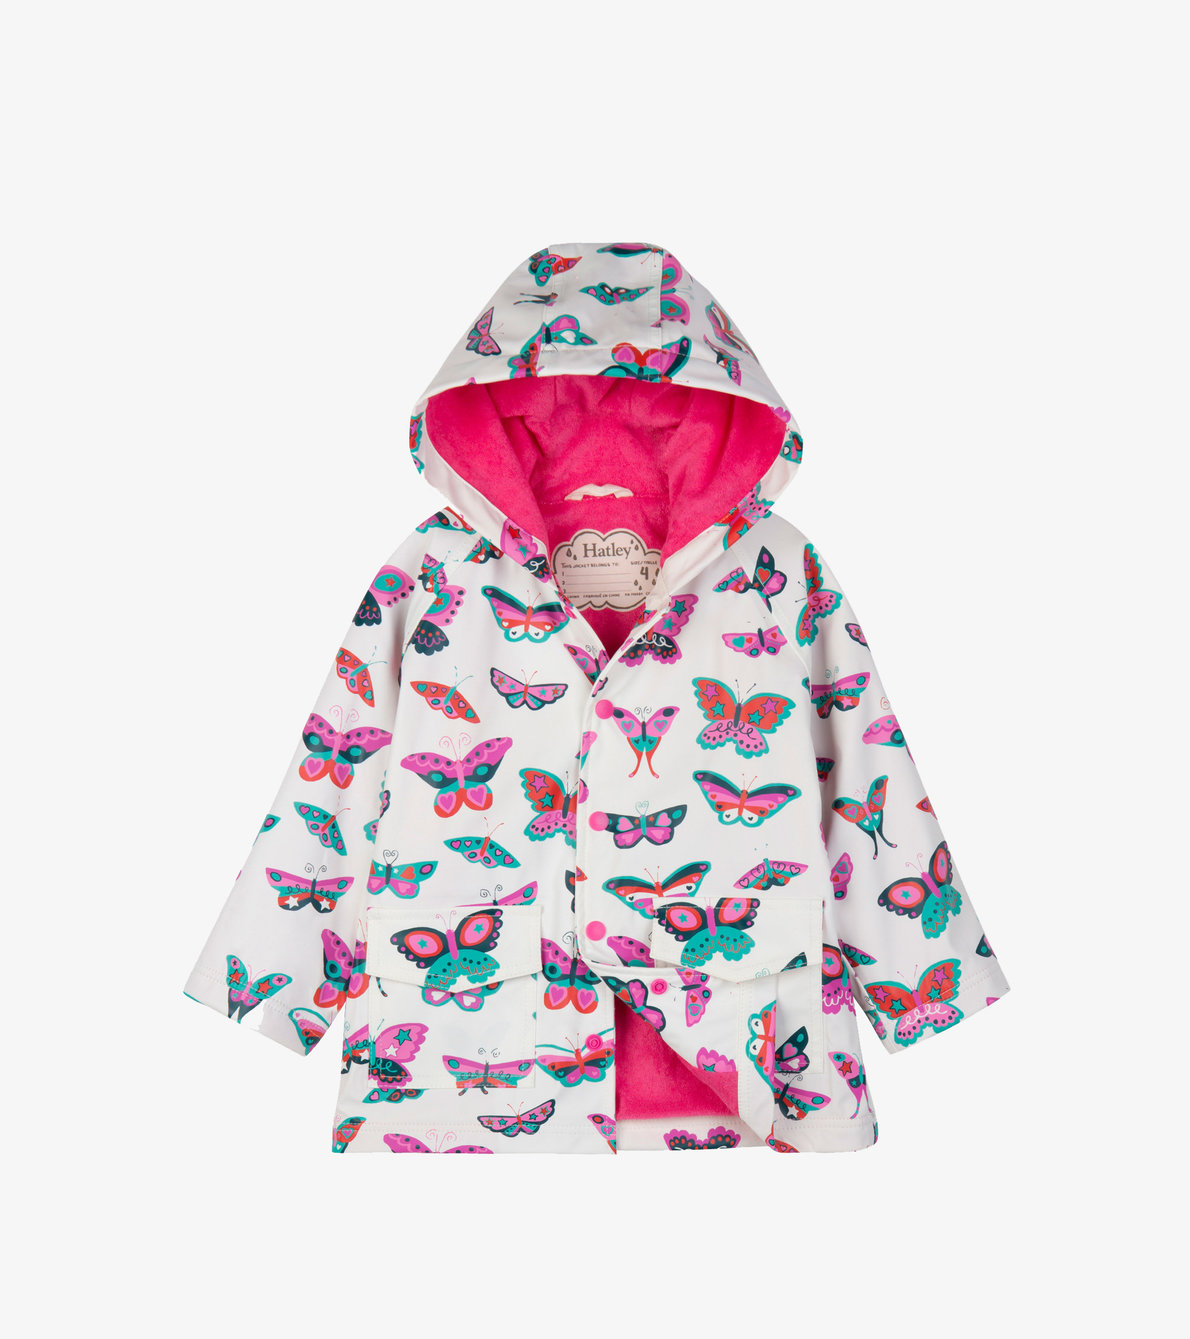 View larger image of Groovy Butterflies Raincoat